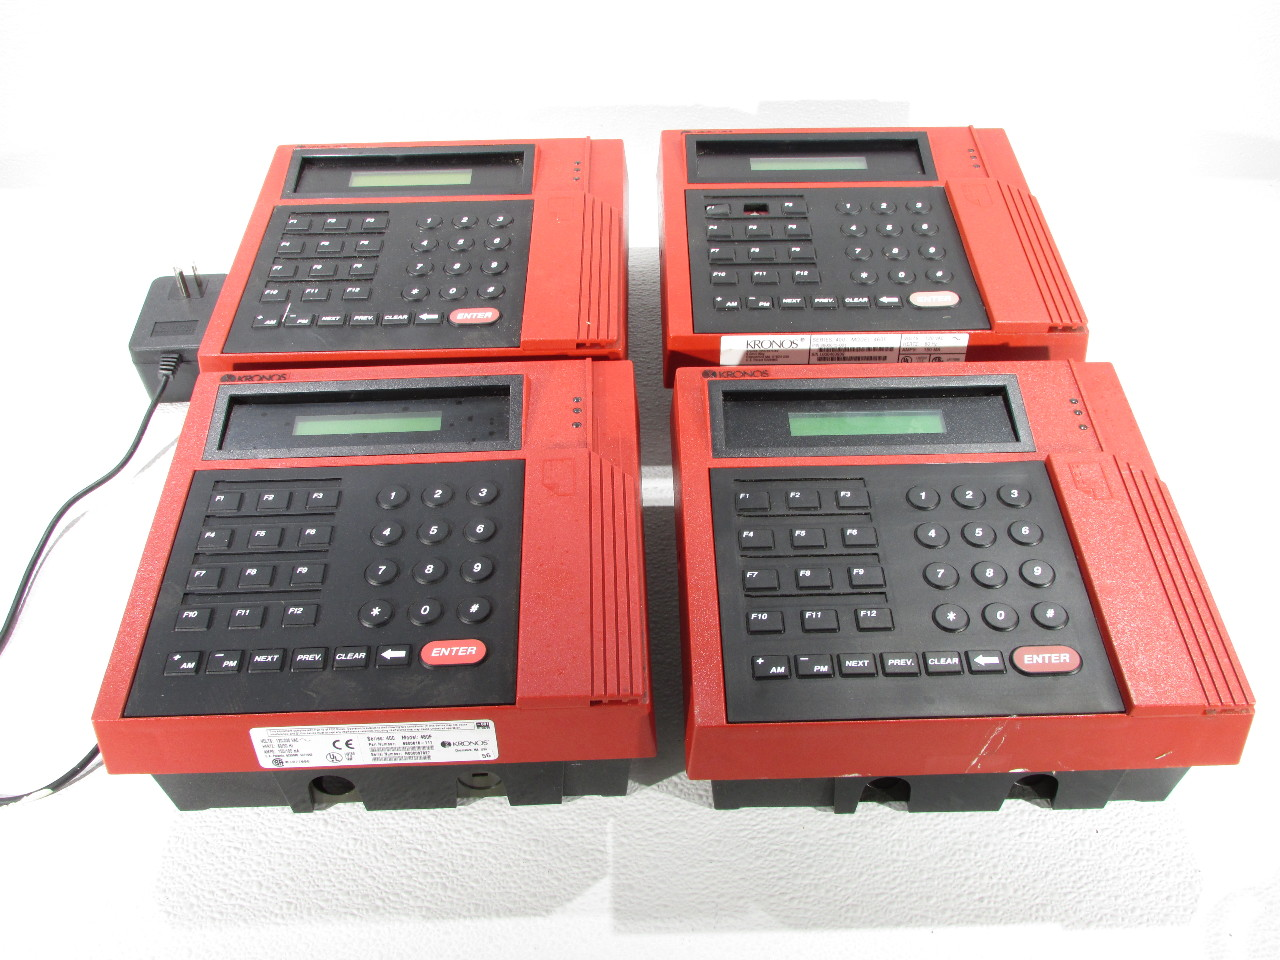 Kronos 480f Time Clock For Sale: LOT OF 4 KRONOS 8600615-001 460F TIME CLOCK 120/230VAC 150